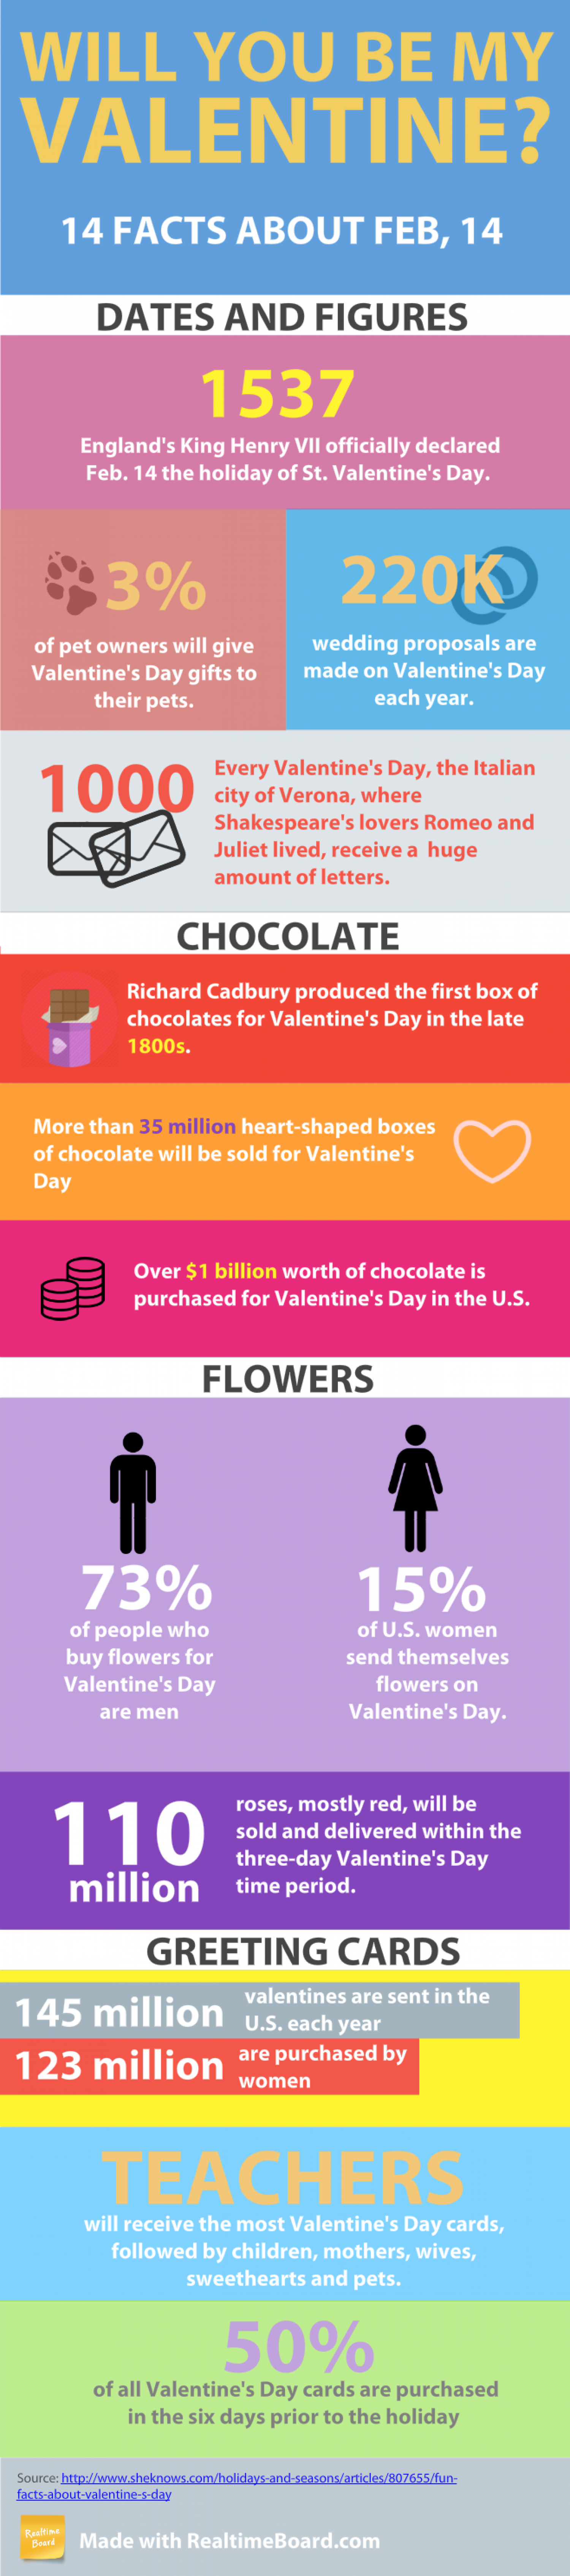 Will You Be My Valentine? Infographic